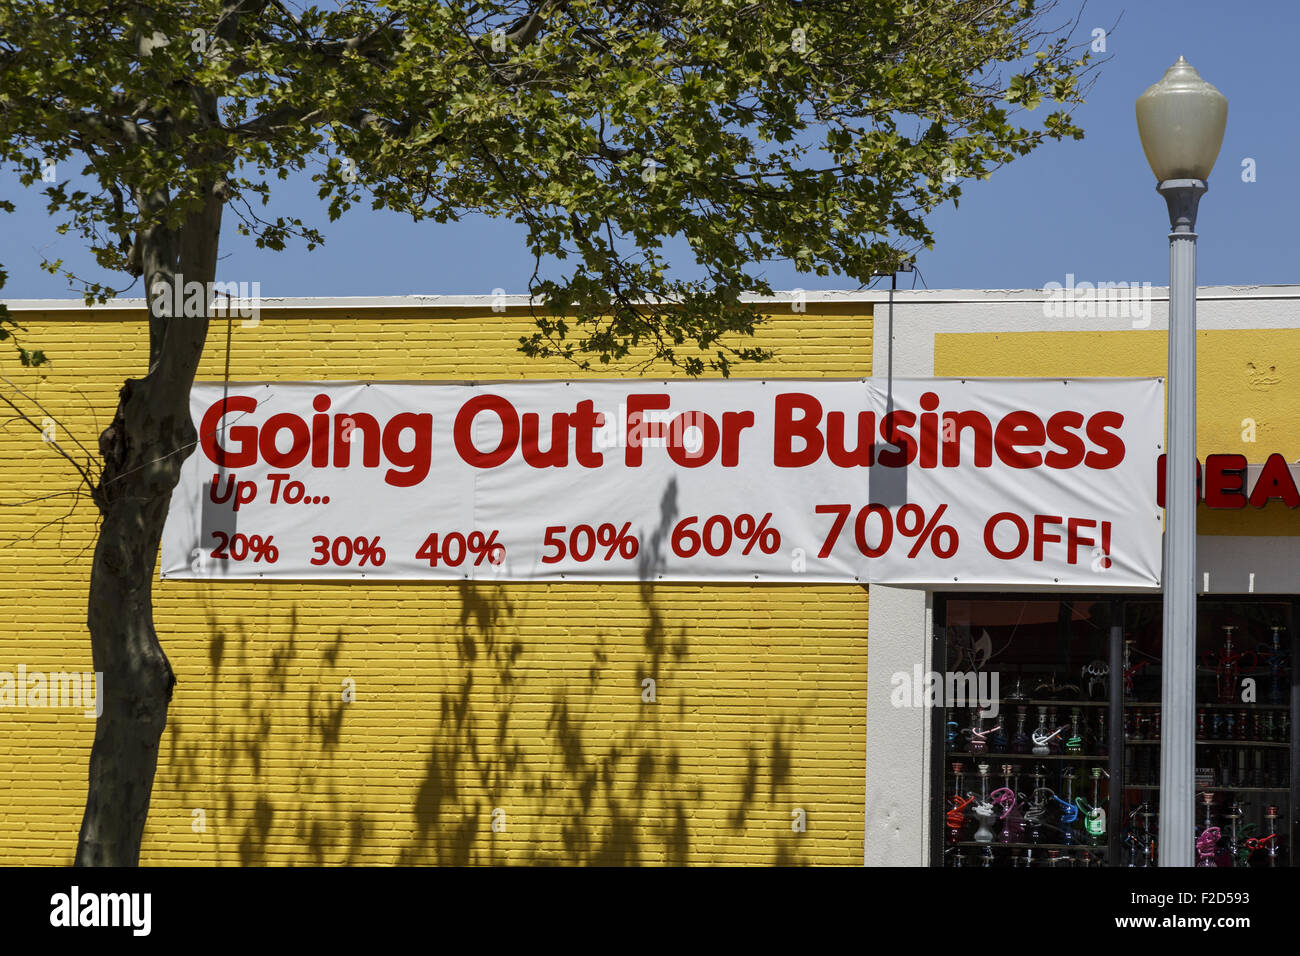 Going out for business sign on the side of a yellow painted store wall - Stock Image